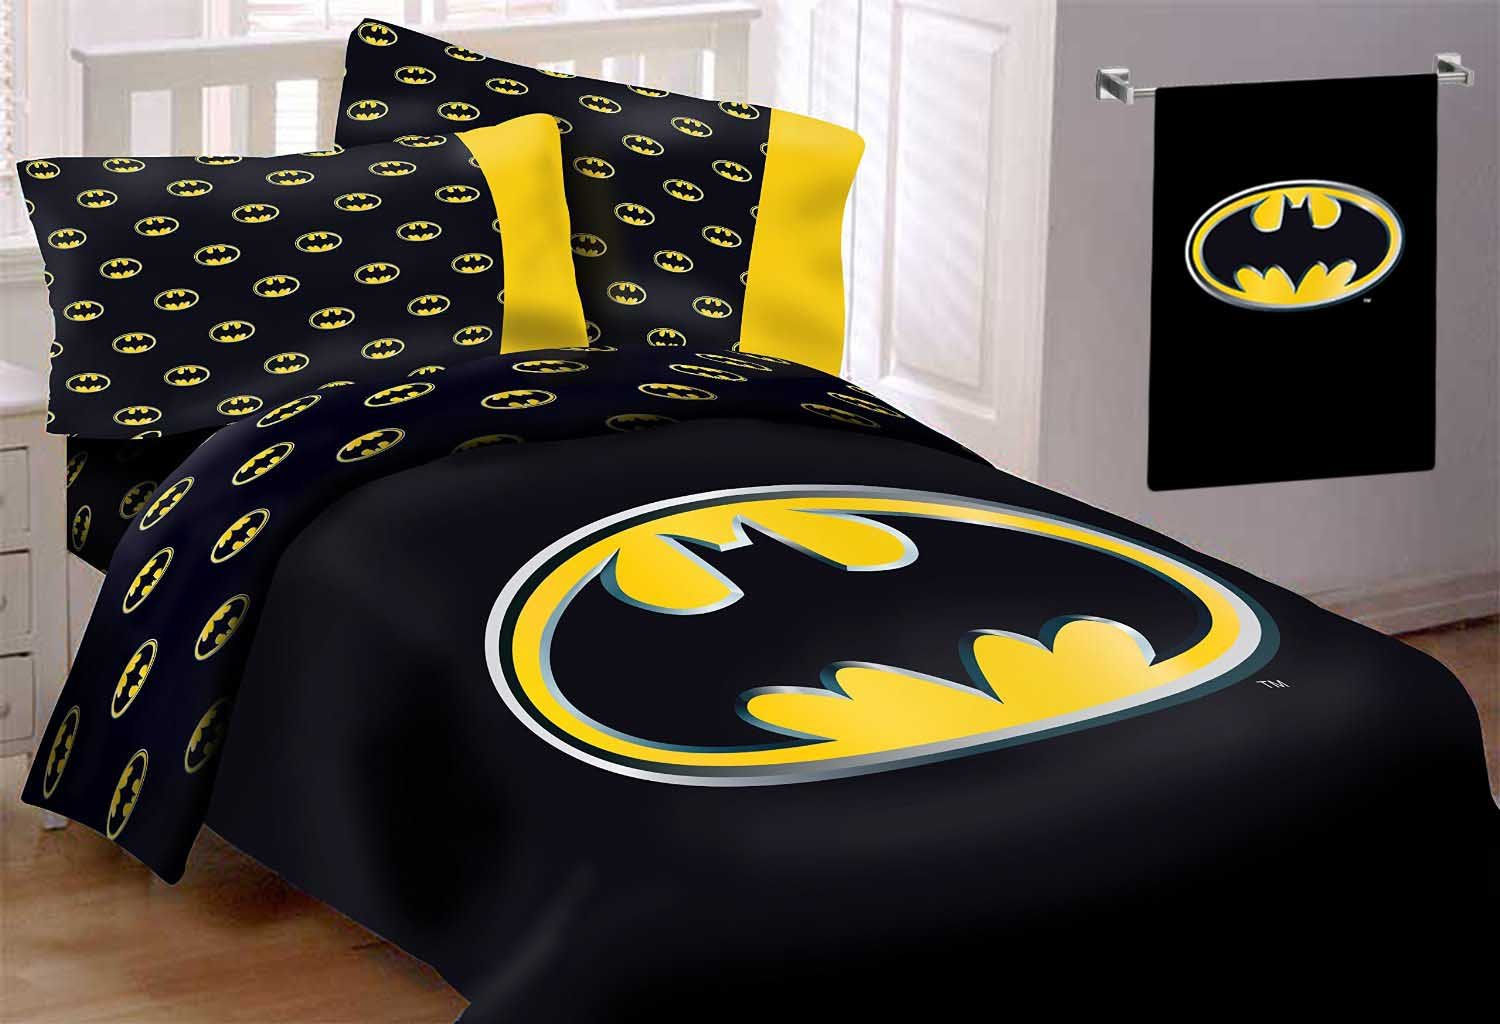 Batman Emblem 4 Piece Reversible Super Soft Luxury Queen Size Comforter Set with Beach Towel 30''x60''